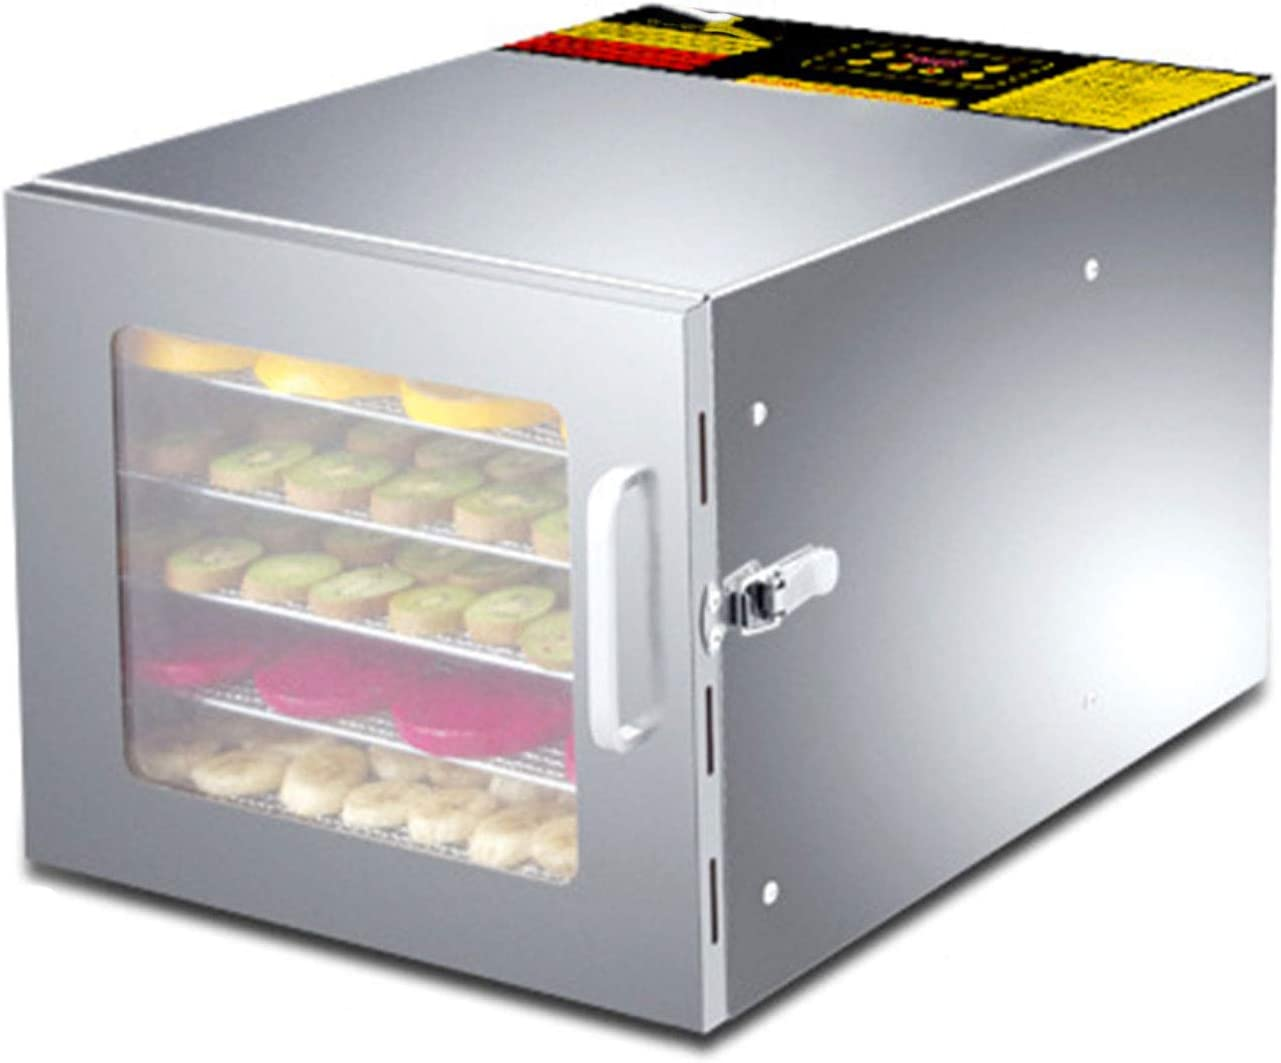 Stainless Max 81% OFF Steel Food Dehydrator for And Jerky Dehydra price Fruit